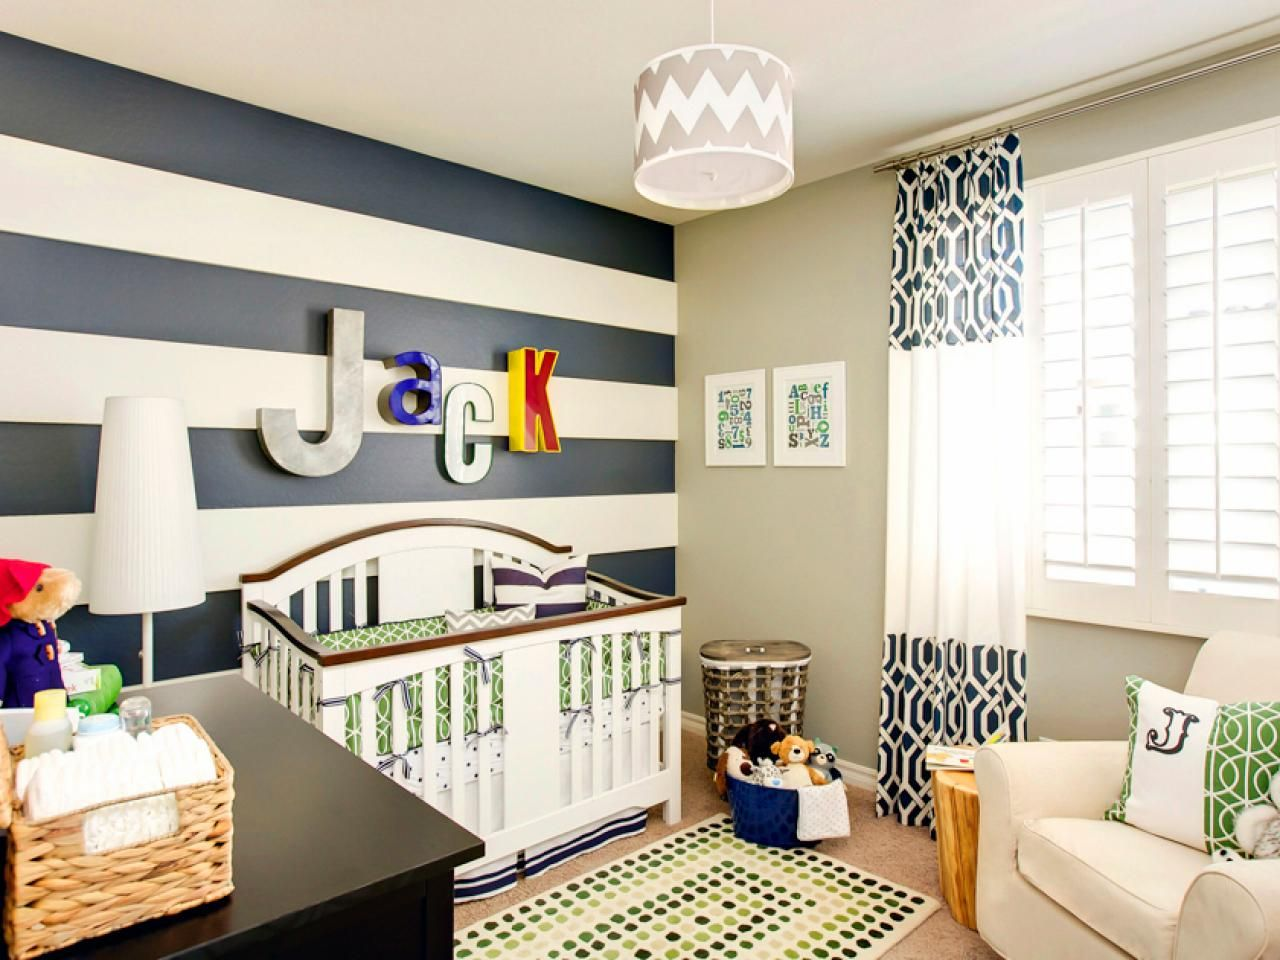 9 Brilliantly Blue Kids\' Rooms | Remodeling ideas, Hgtv and Kids rooms